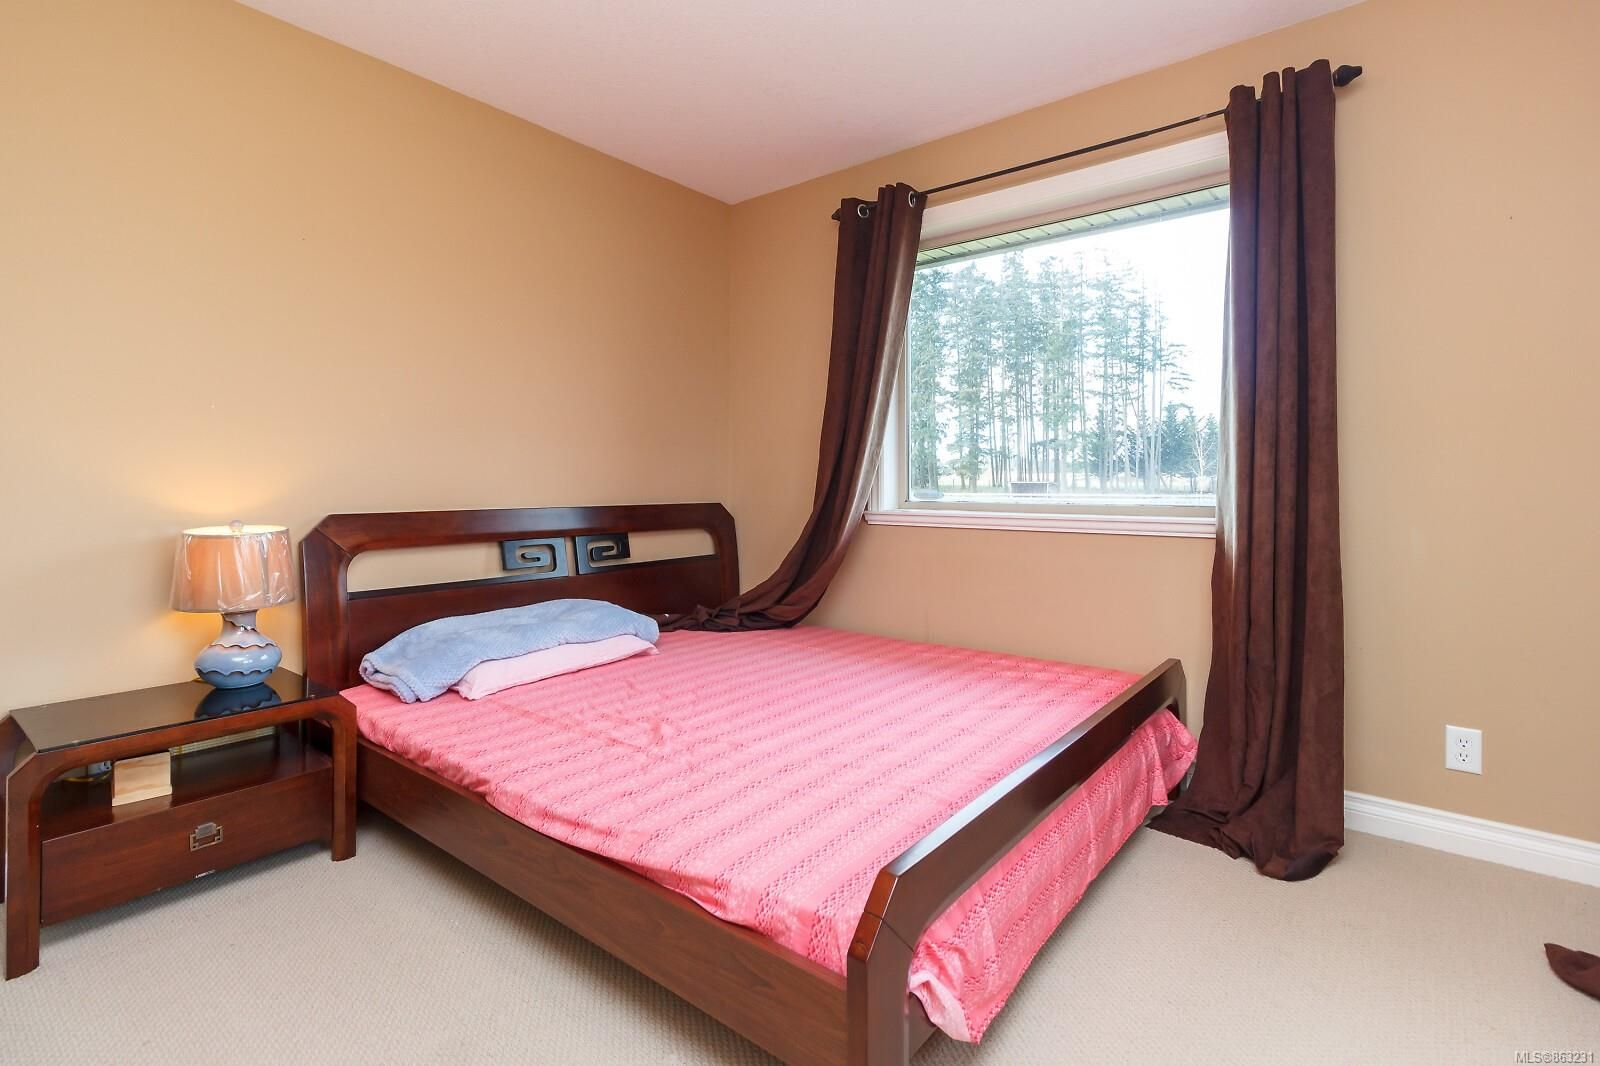 Photo 14: Photos: 1230 Hodges Rd in : PQ French Creek House for sale (Parksville/Qualicum)  : MLS®# 863231